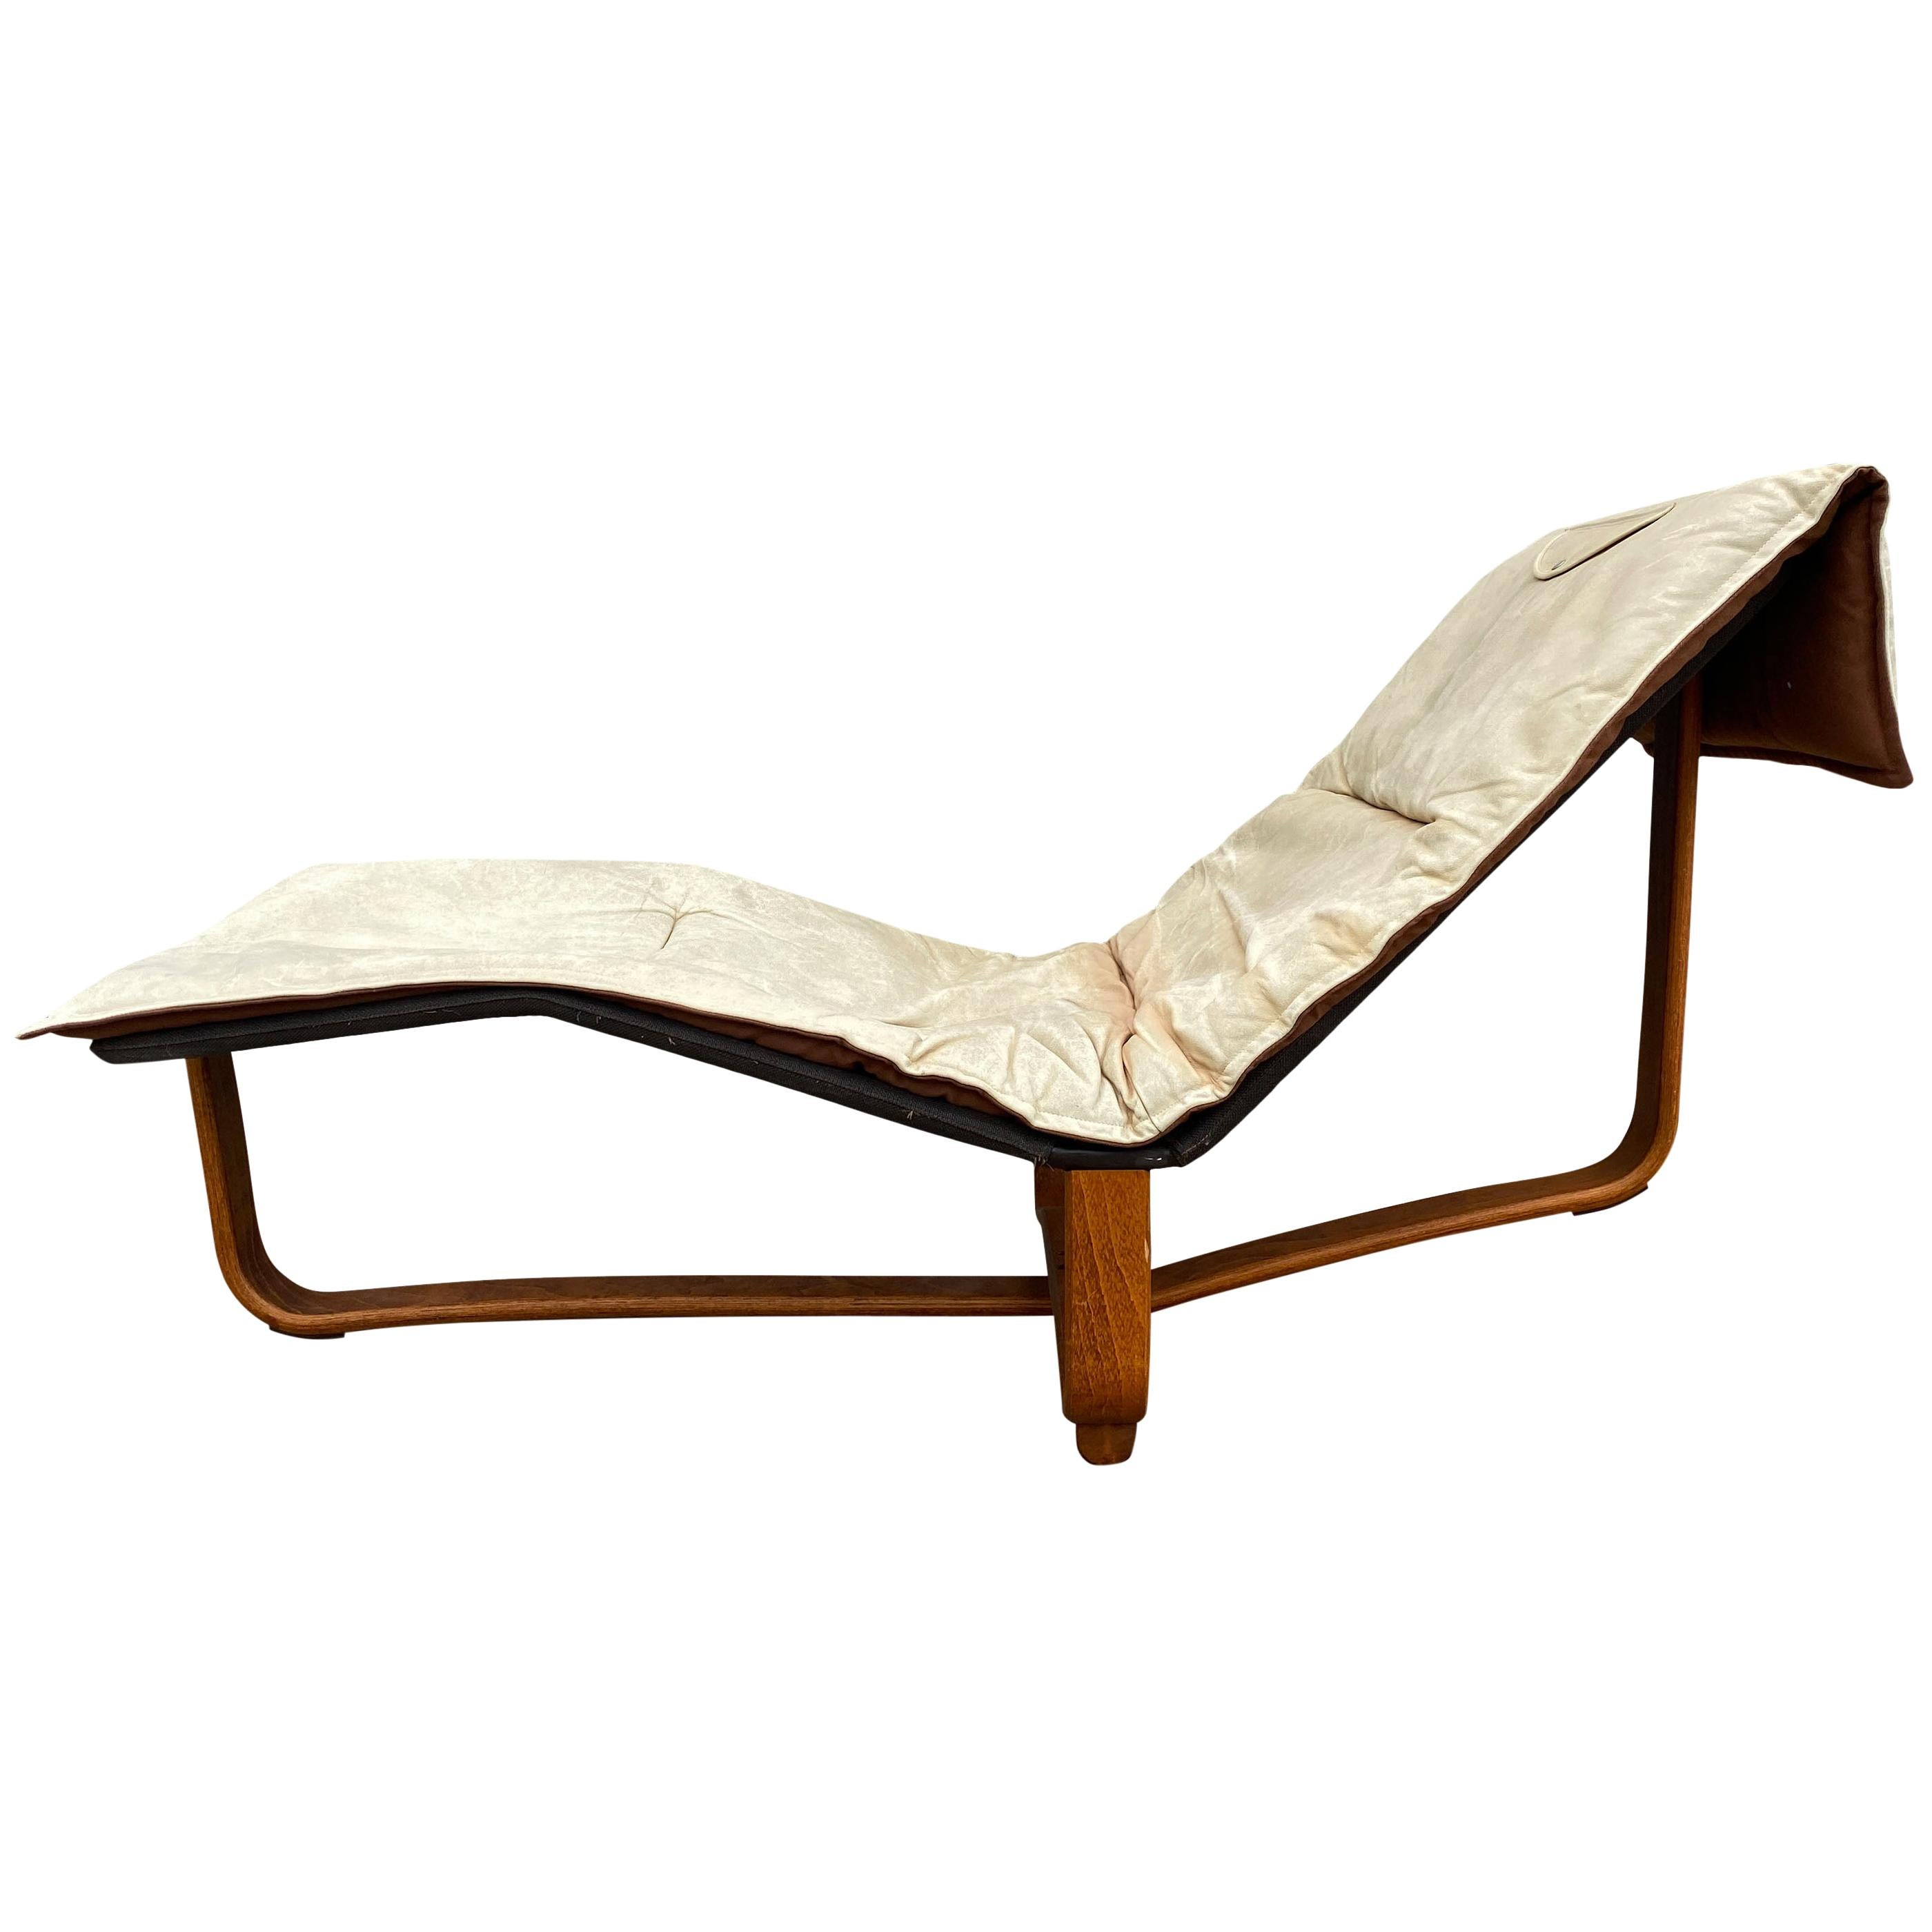 Midcentury Danish Modern Westnofa Leather Chaise Lounge Chair Ingmar Relling